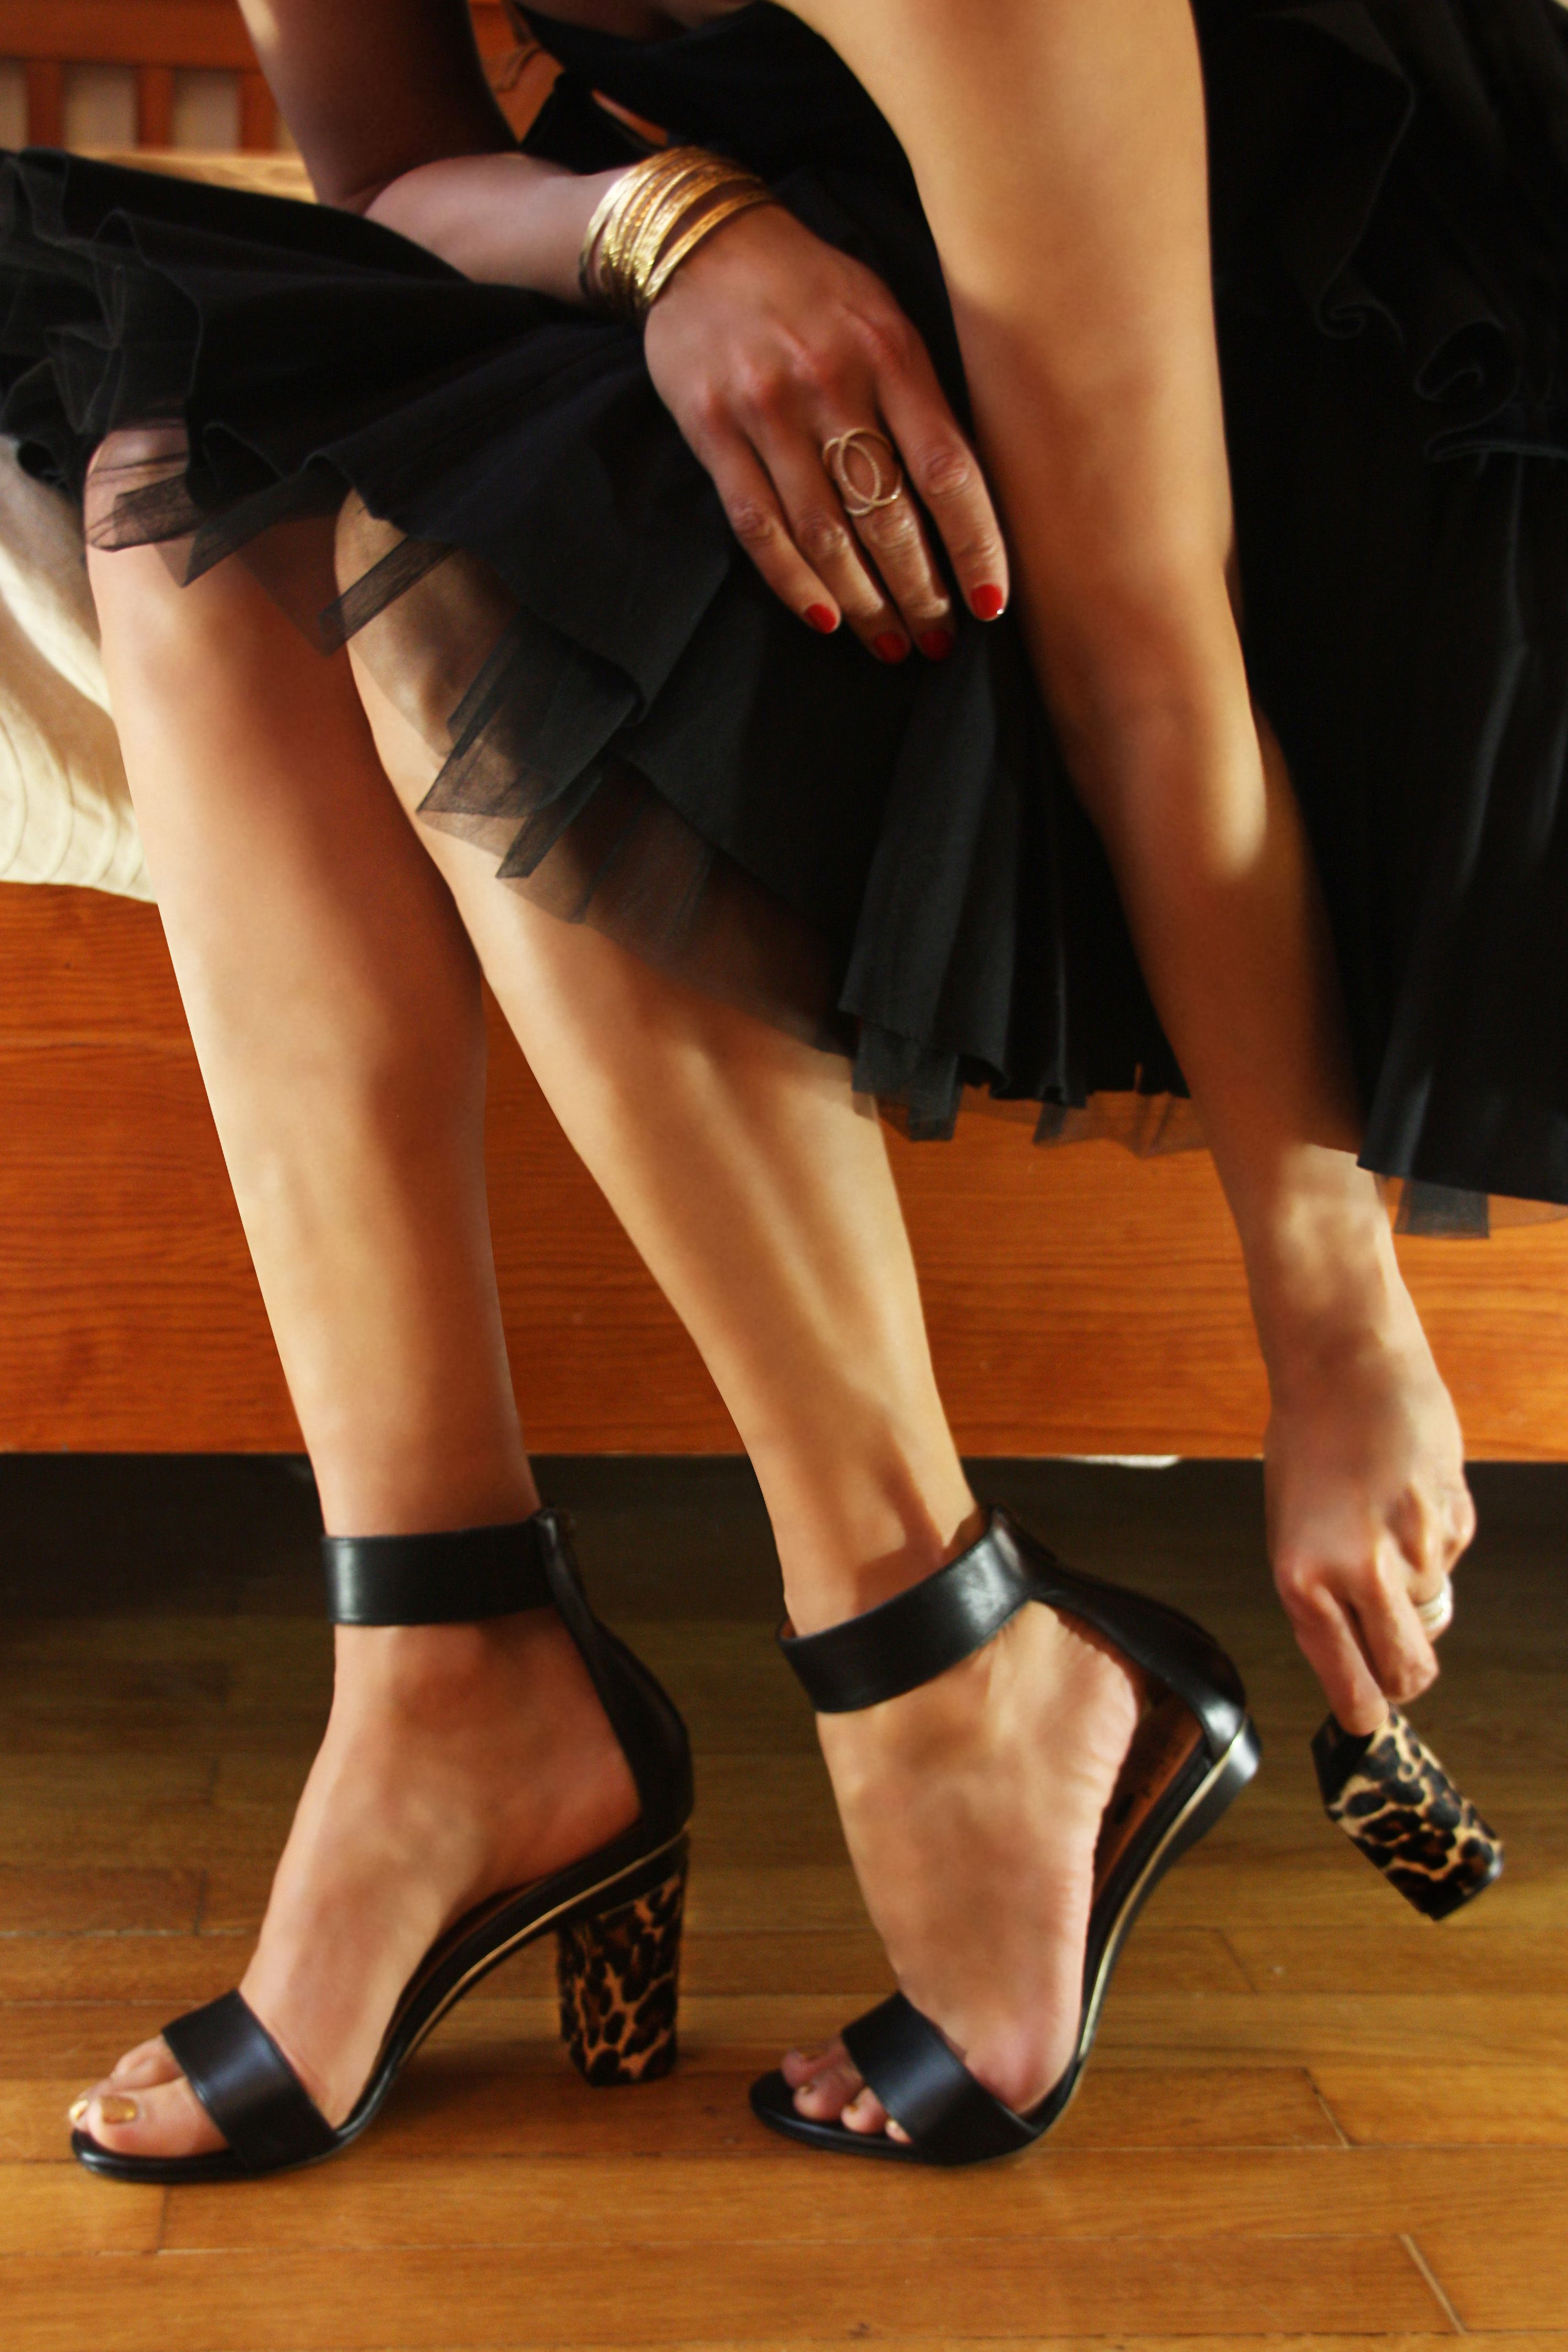 e575106ec39 Tanya Heath - Paris has created the first MULTI-HEIGHT SHOE with changeable  heels. The same shoe can transform from a gorgeous high heel to a  comfortable ...